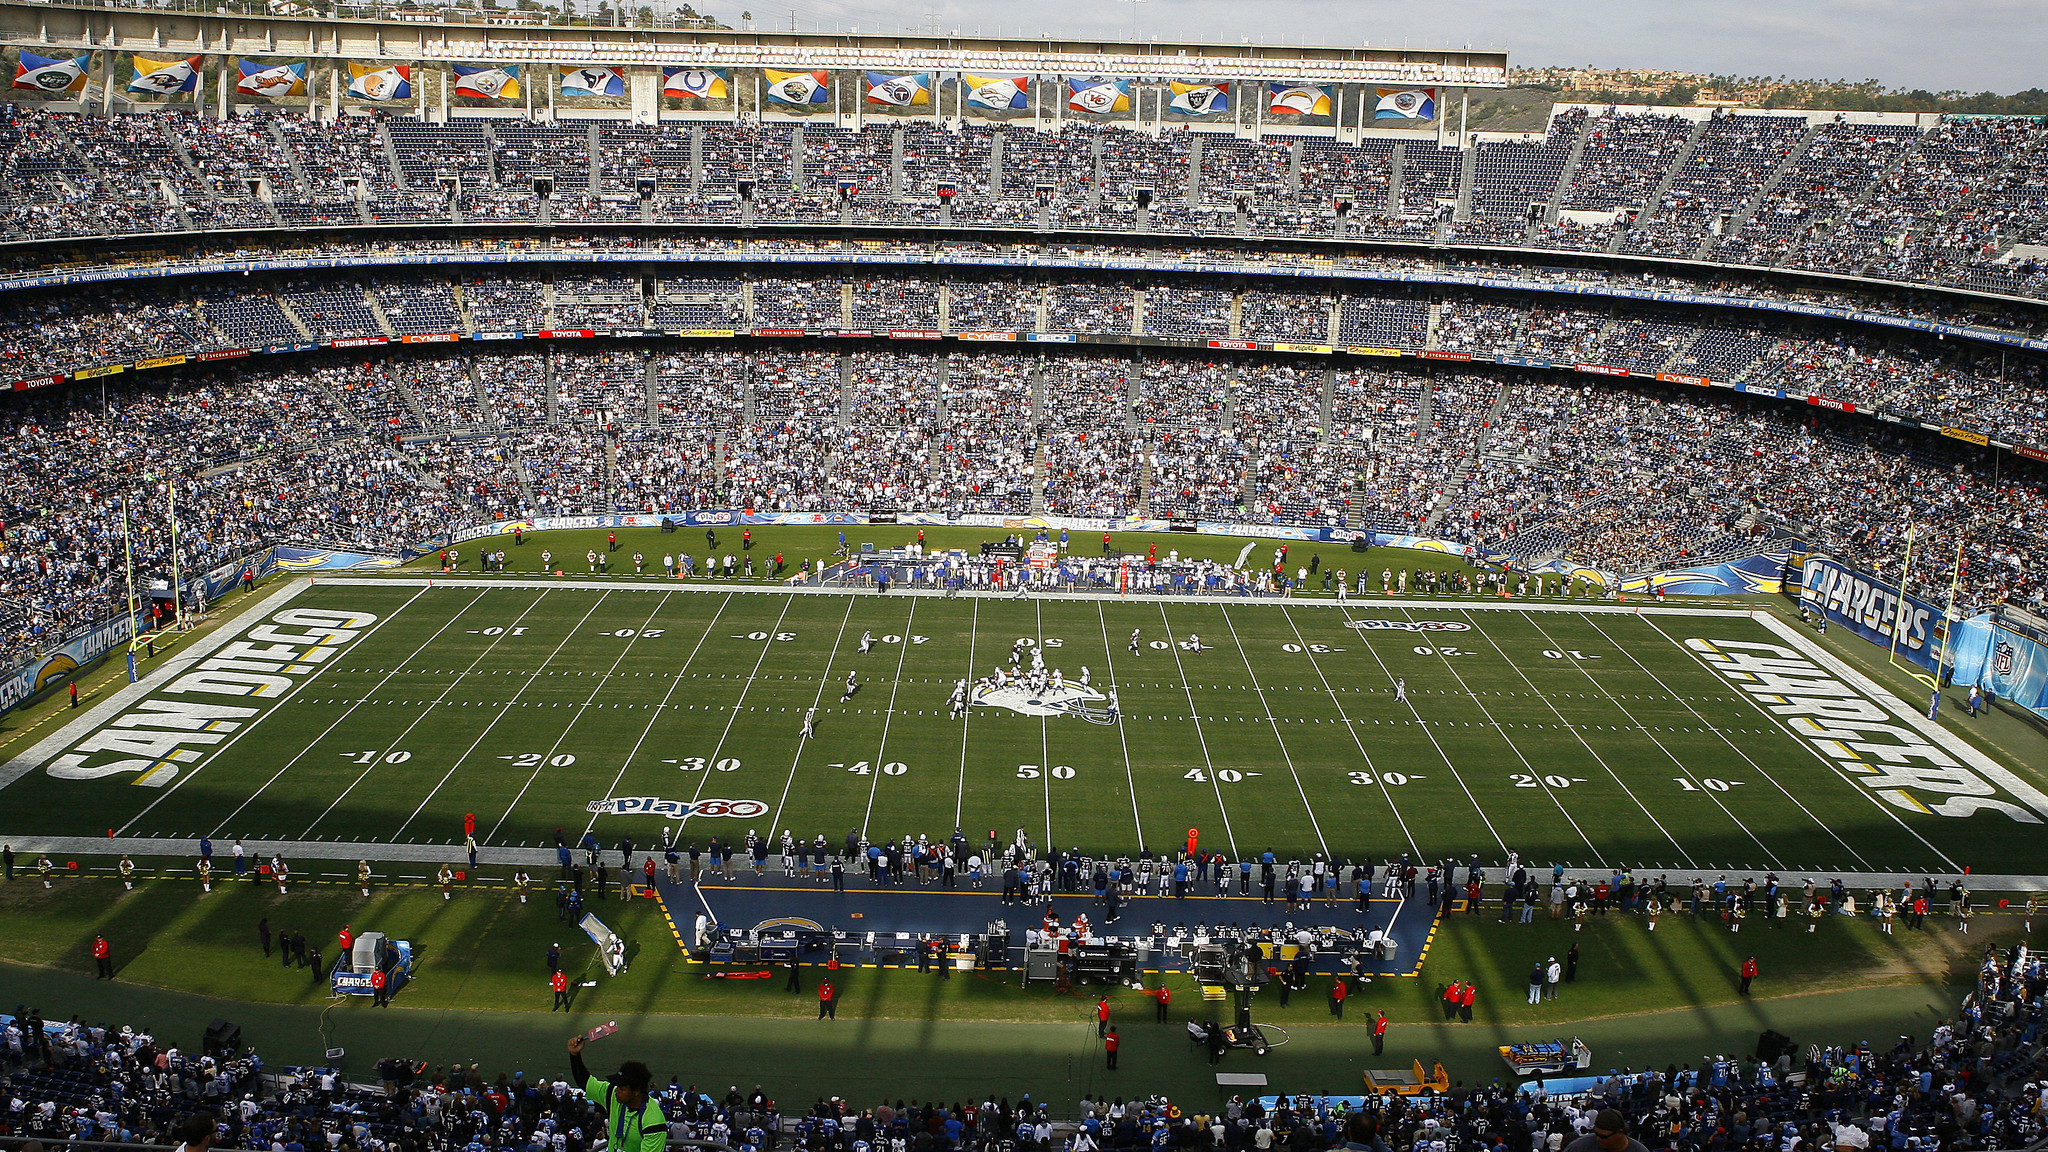 Image of Qualcomm Stadium.